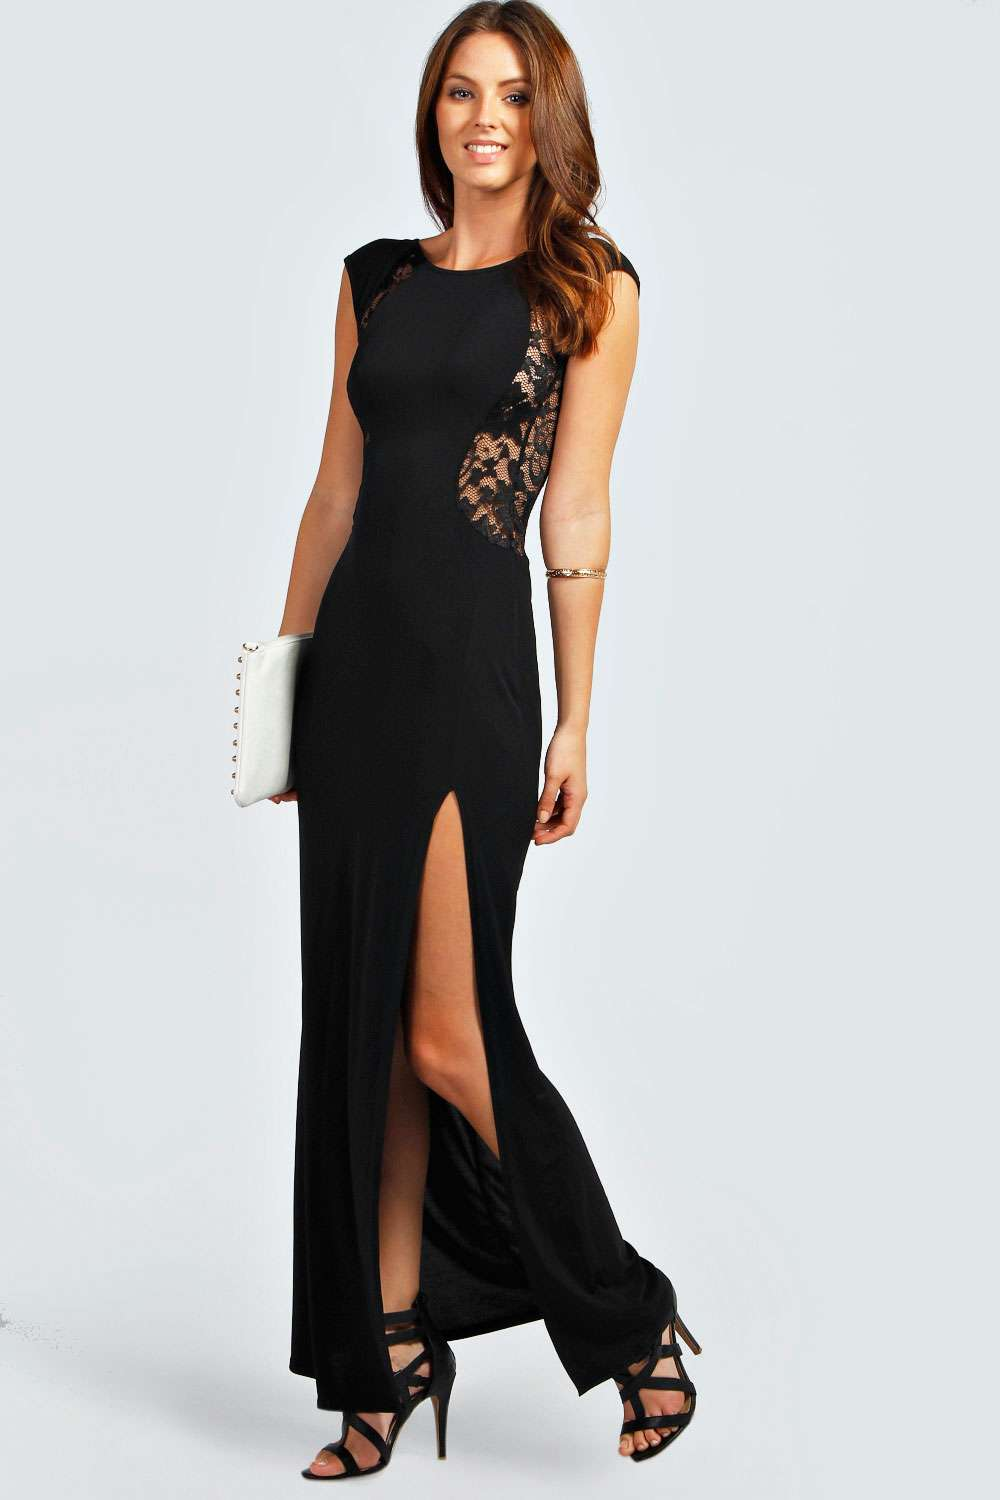 Find great deals on eBay for black maxi dress with slit. Shop with confidence.